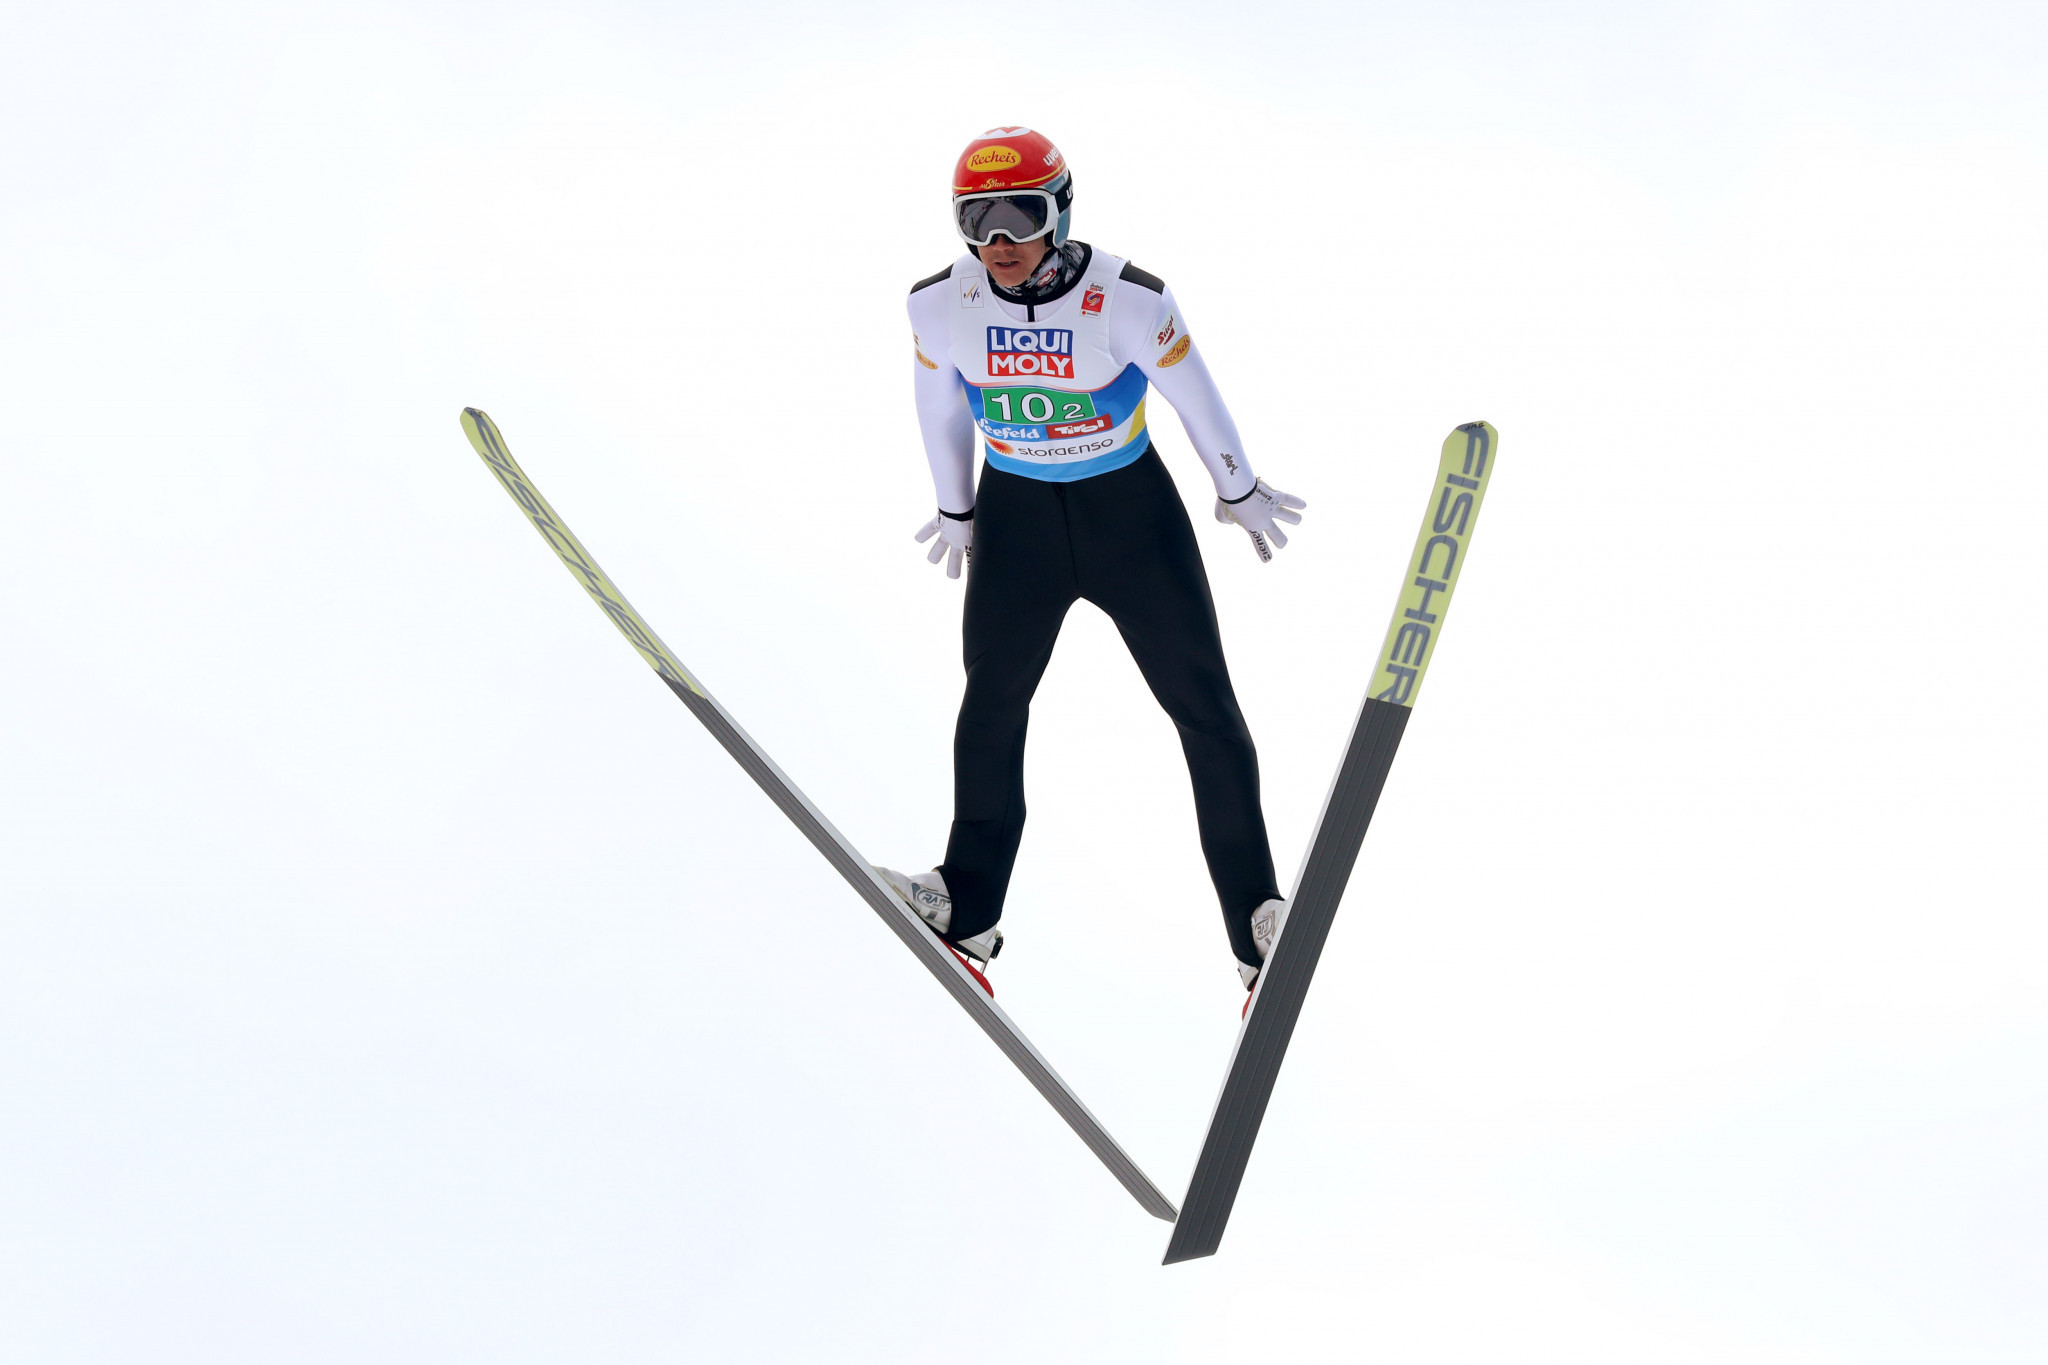 Olympic bronze medallist Seidl returns to Nordic combined training following injury